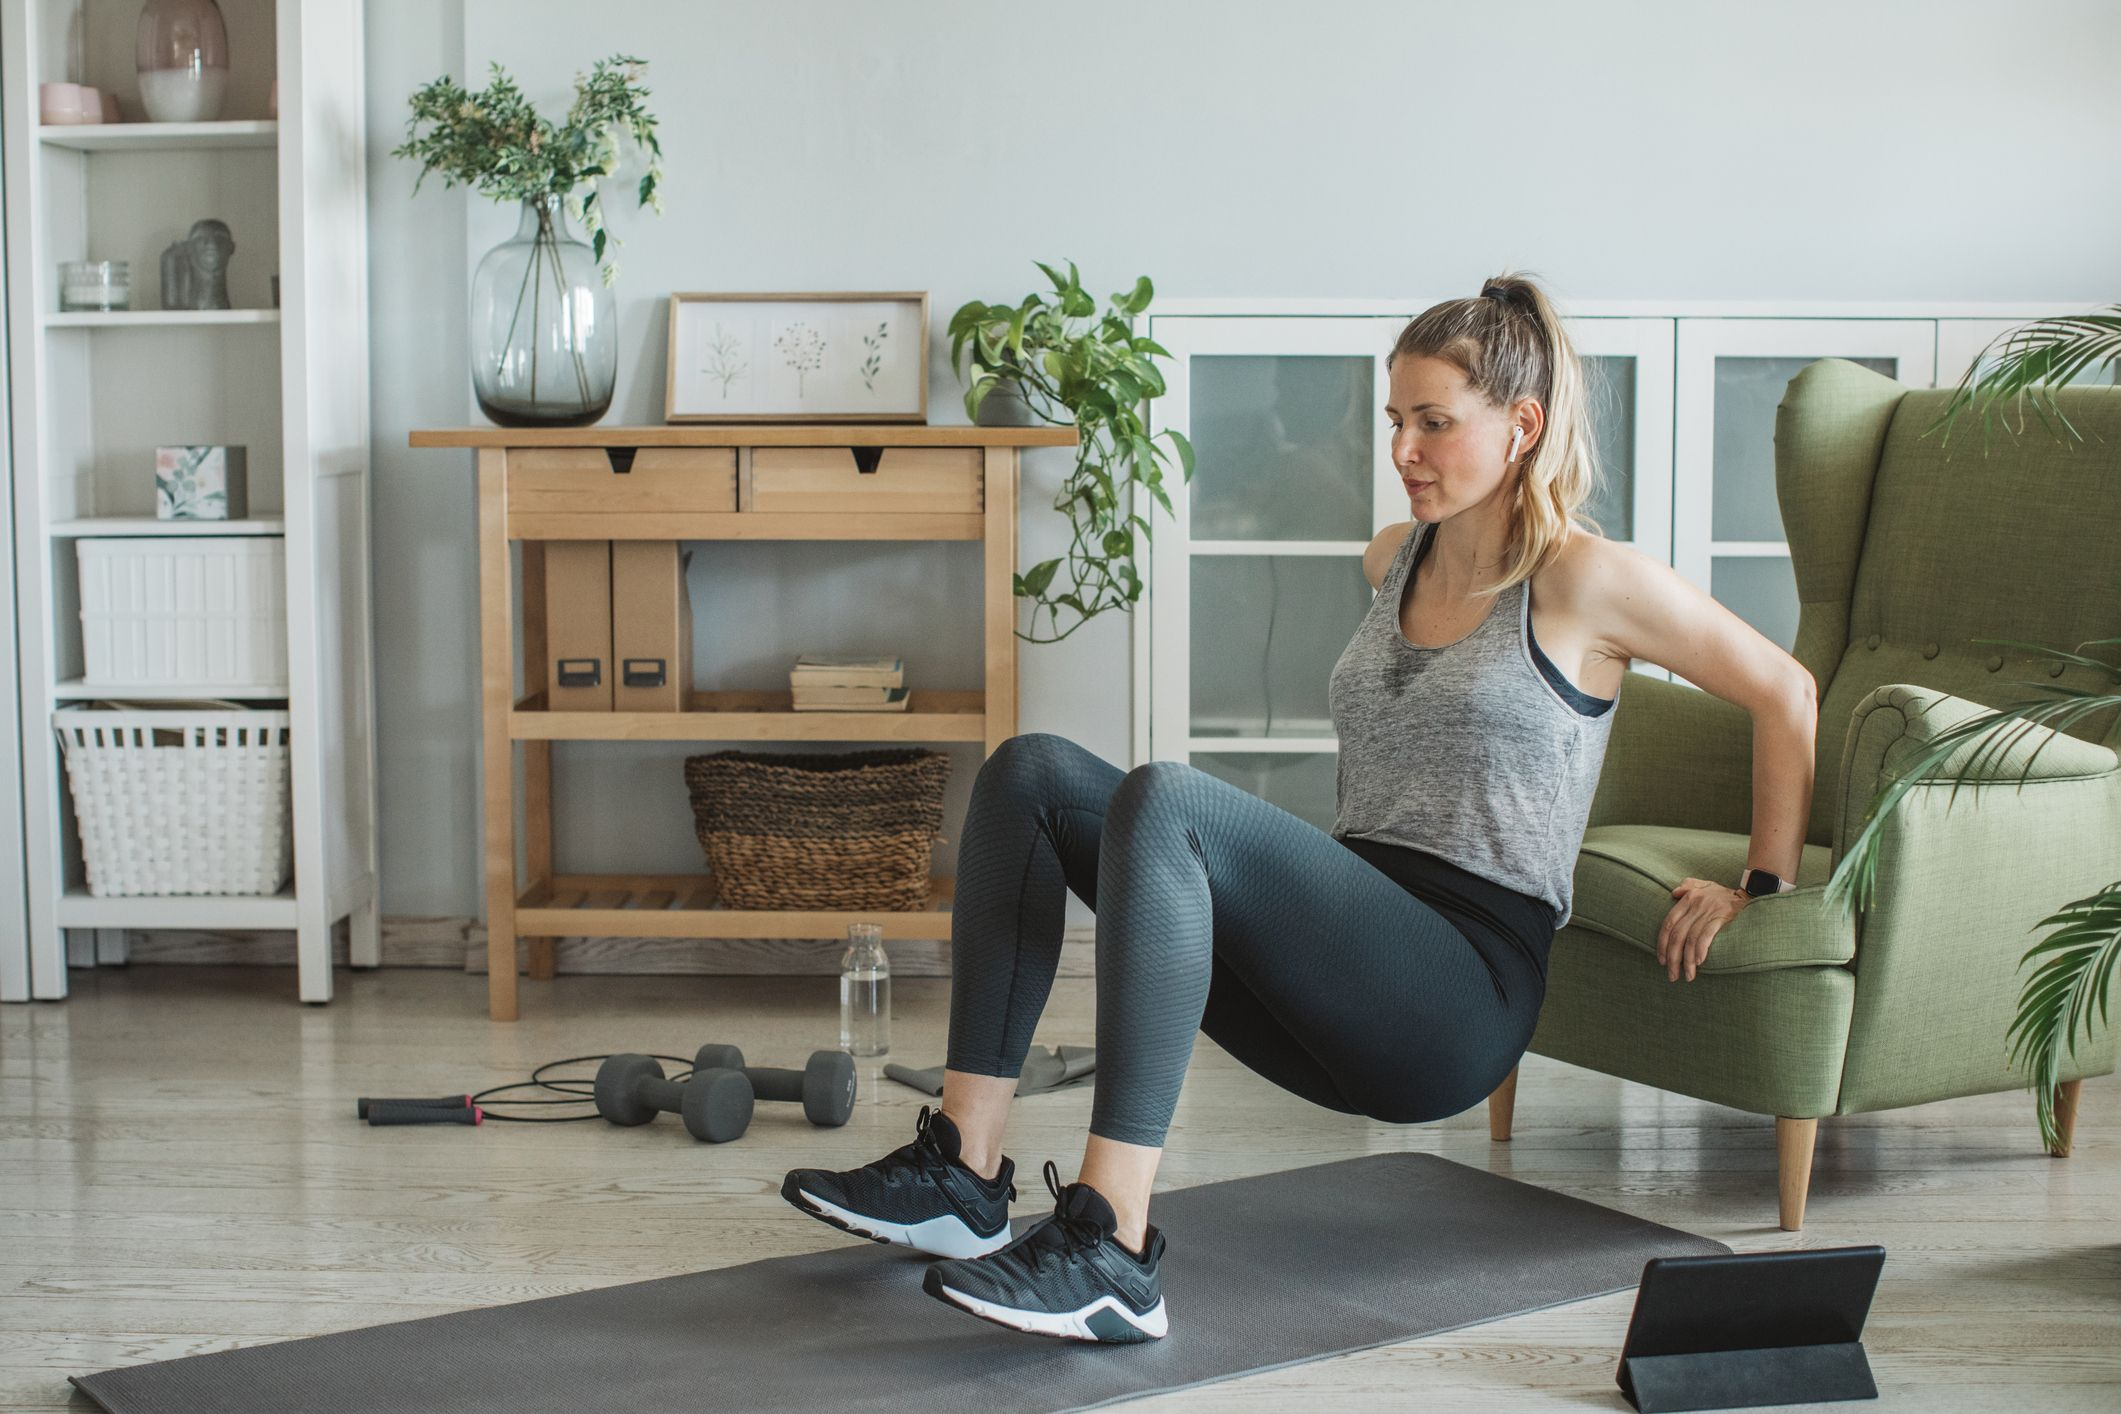 A HIIT Circuit to Supercharge Your Fitness & Results from Home